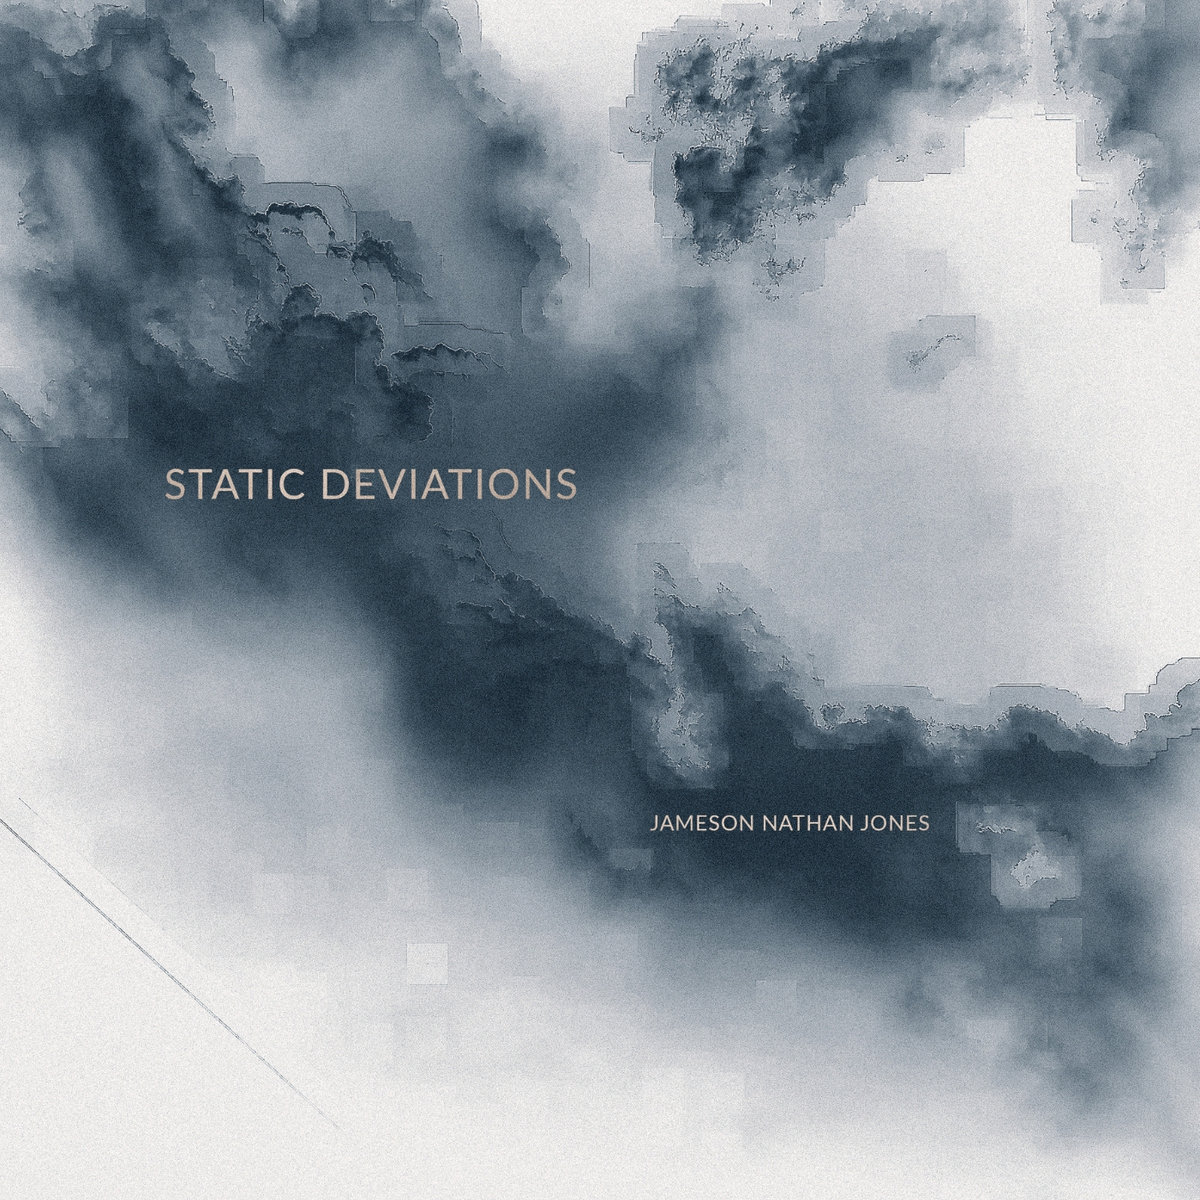 Sound Impression: Static Deviations by Jameson Nathan Jones